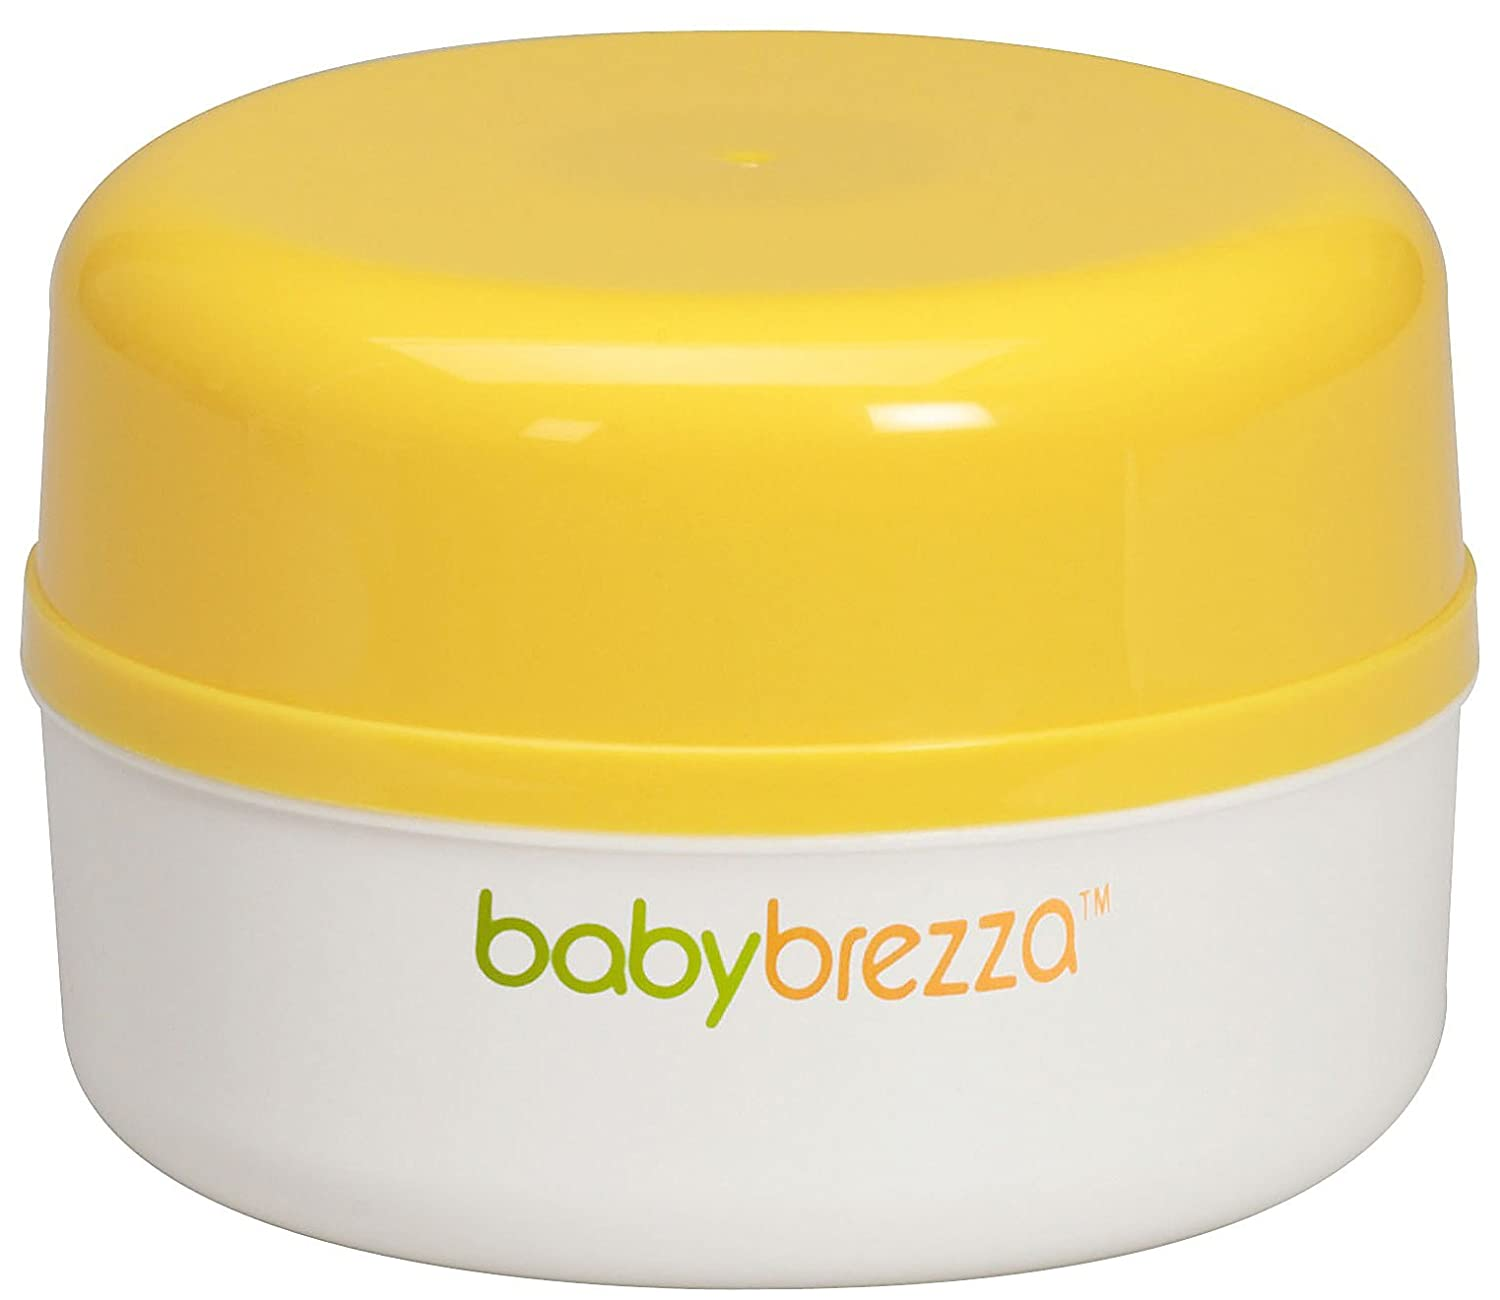 Baby Brezza Travel Capsule - A Complete Travel Meal Set in Yellow